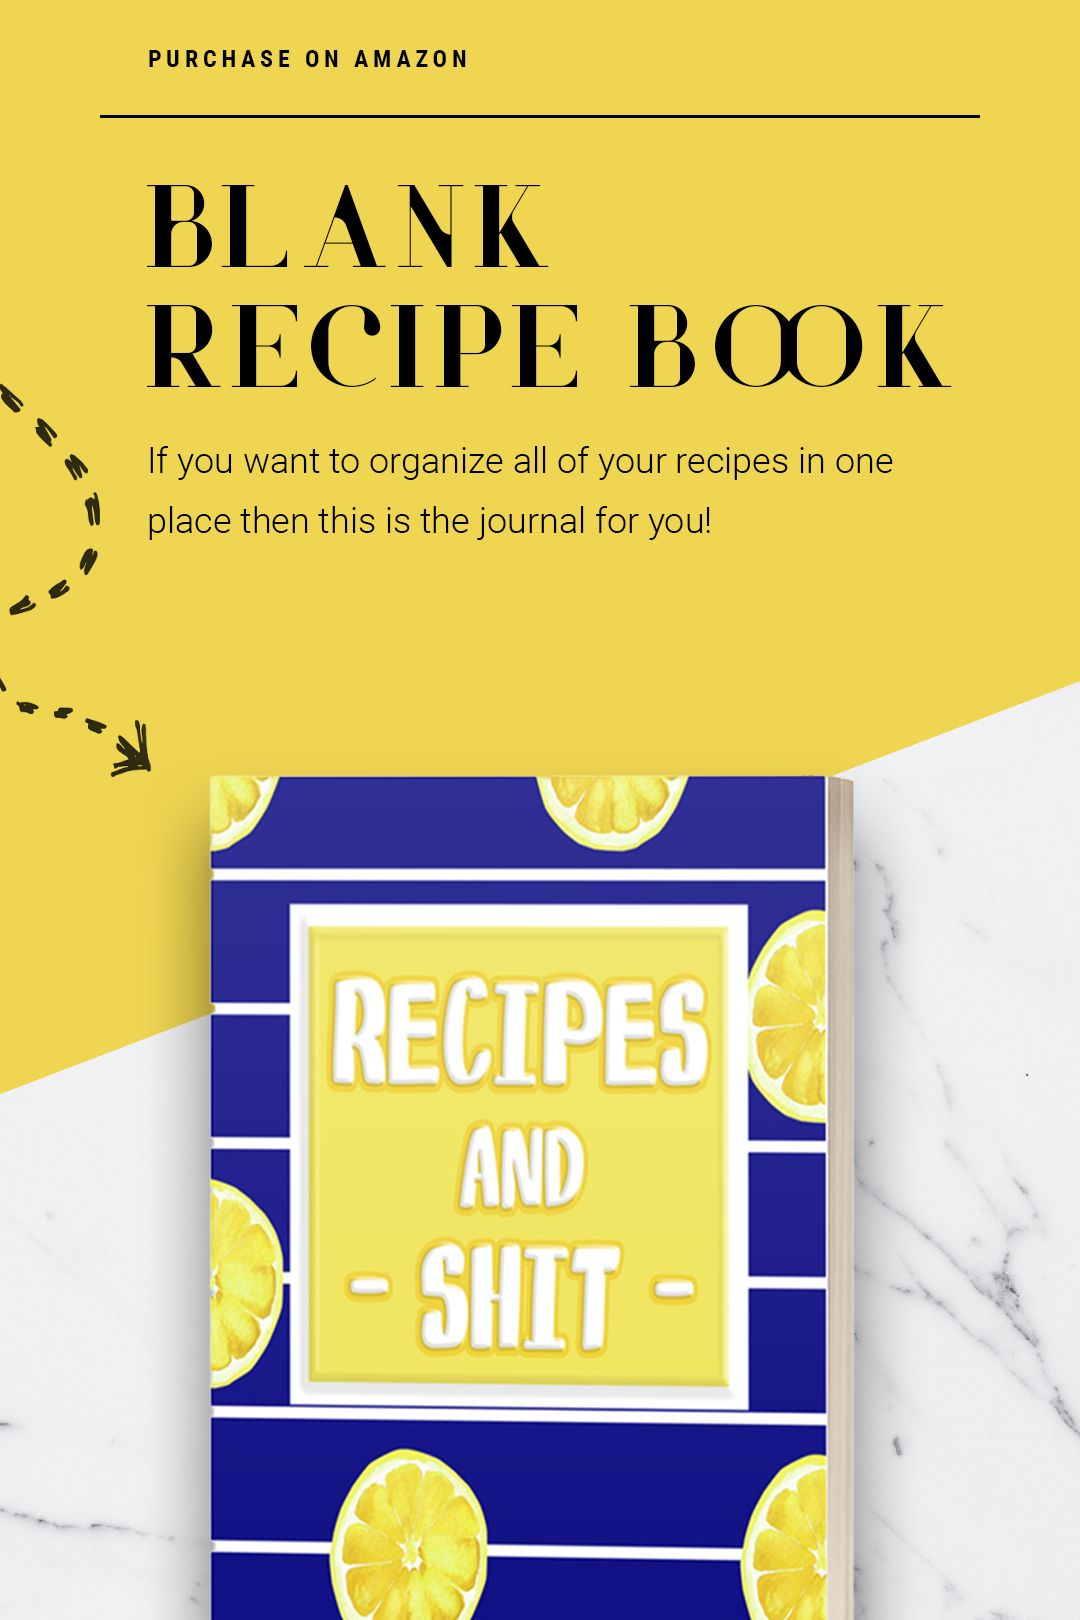 Recipes And Shit Blank Empty Recipe Book With Lemon Design In 2020 Recipe Book New Cooking Other Recipes